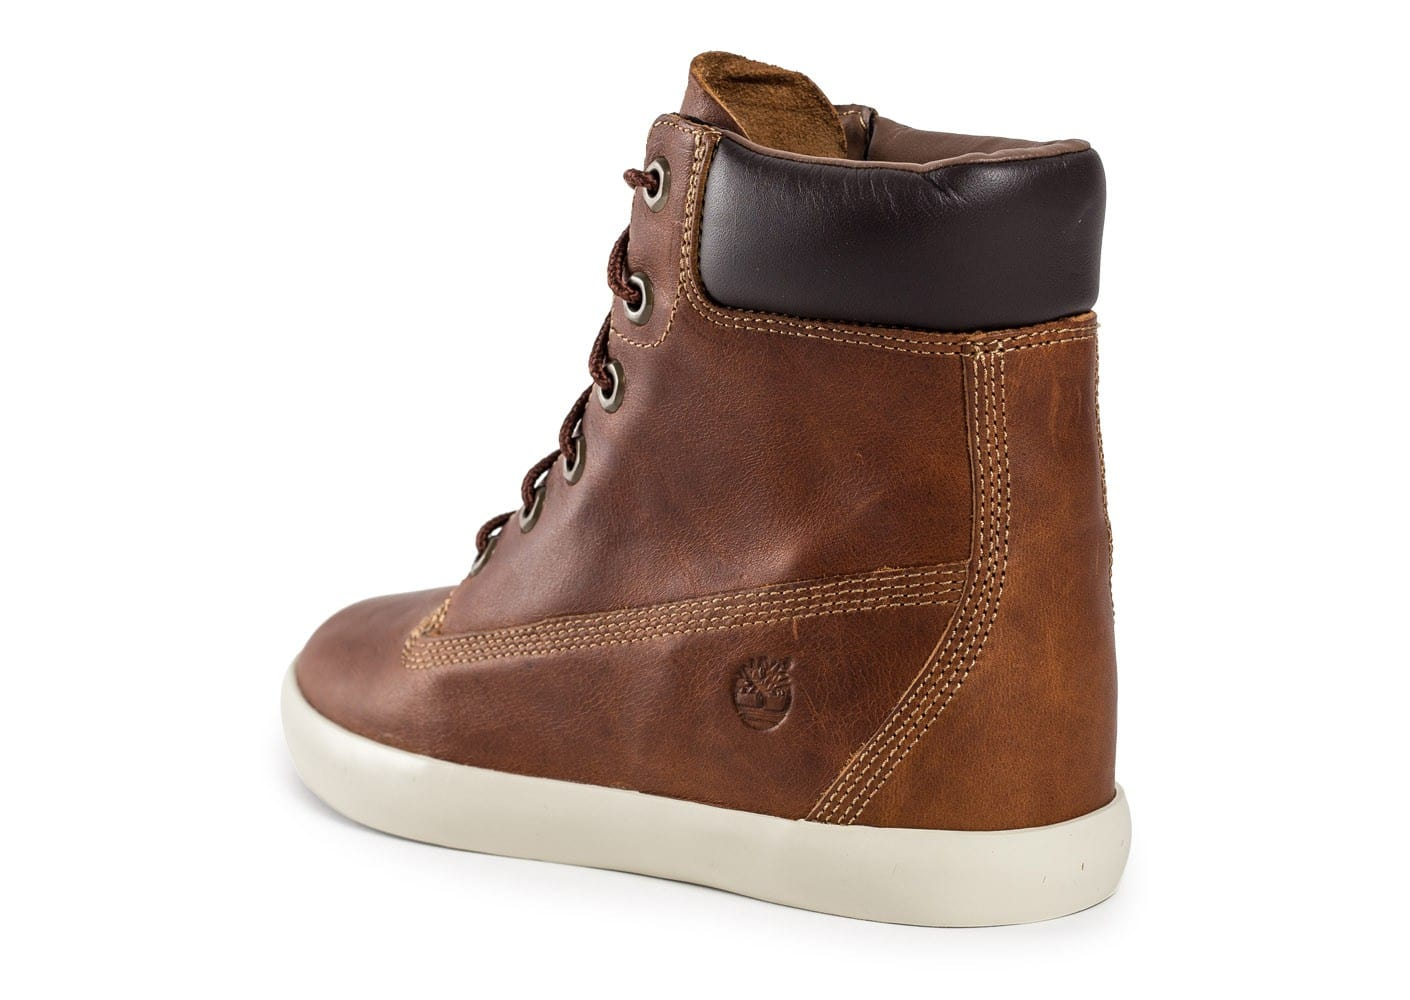 timberland flannery cuir marron chaussures chaussures chausport. Black Bedroom Furniture Sets. Home Design Ideas